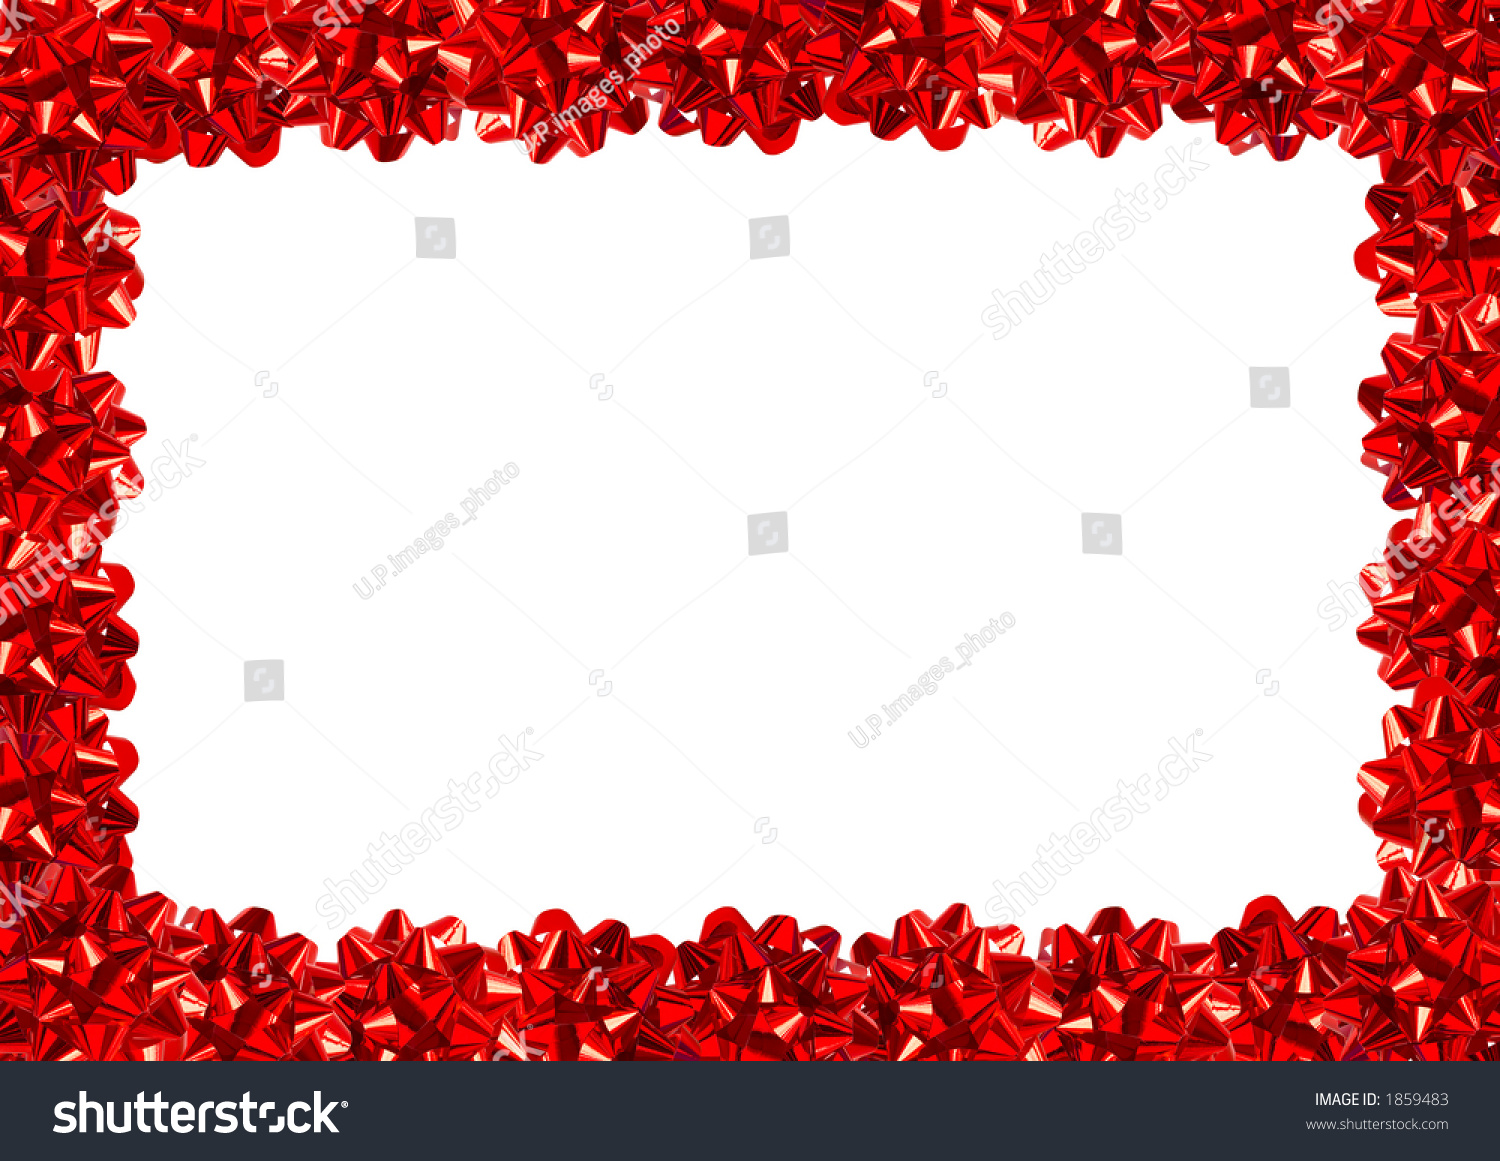 Red gift bows border with clipping path for easy background removing preview save to a lightbox